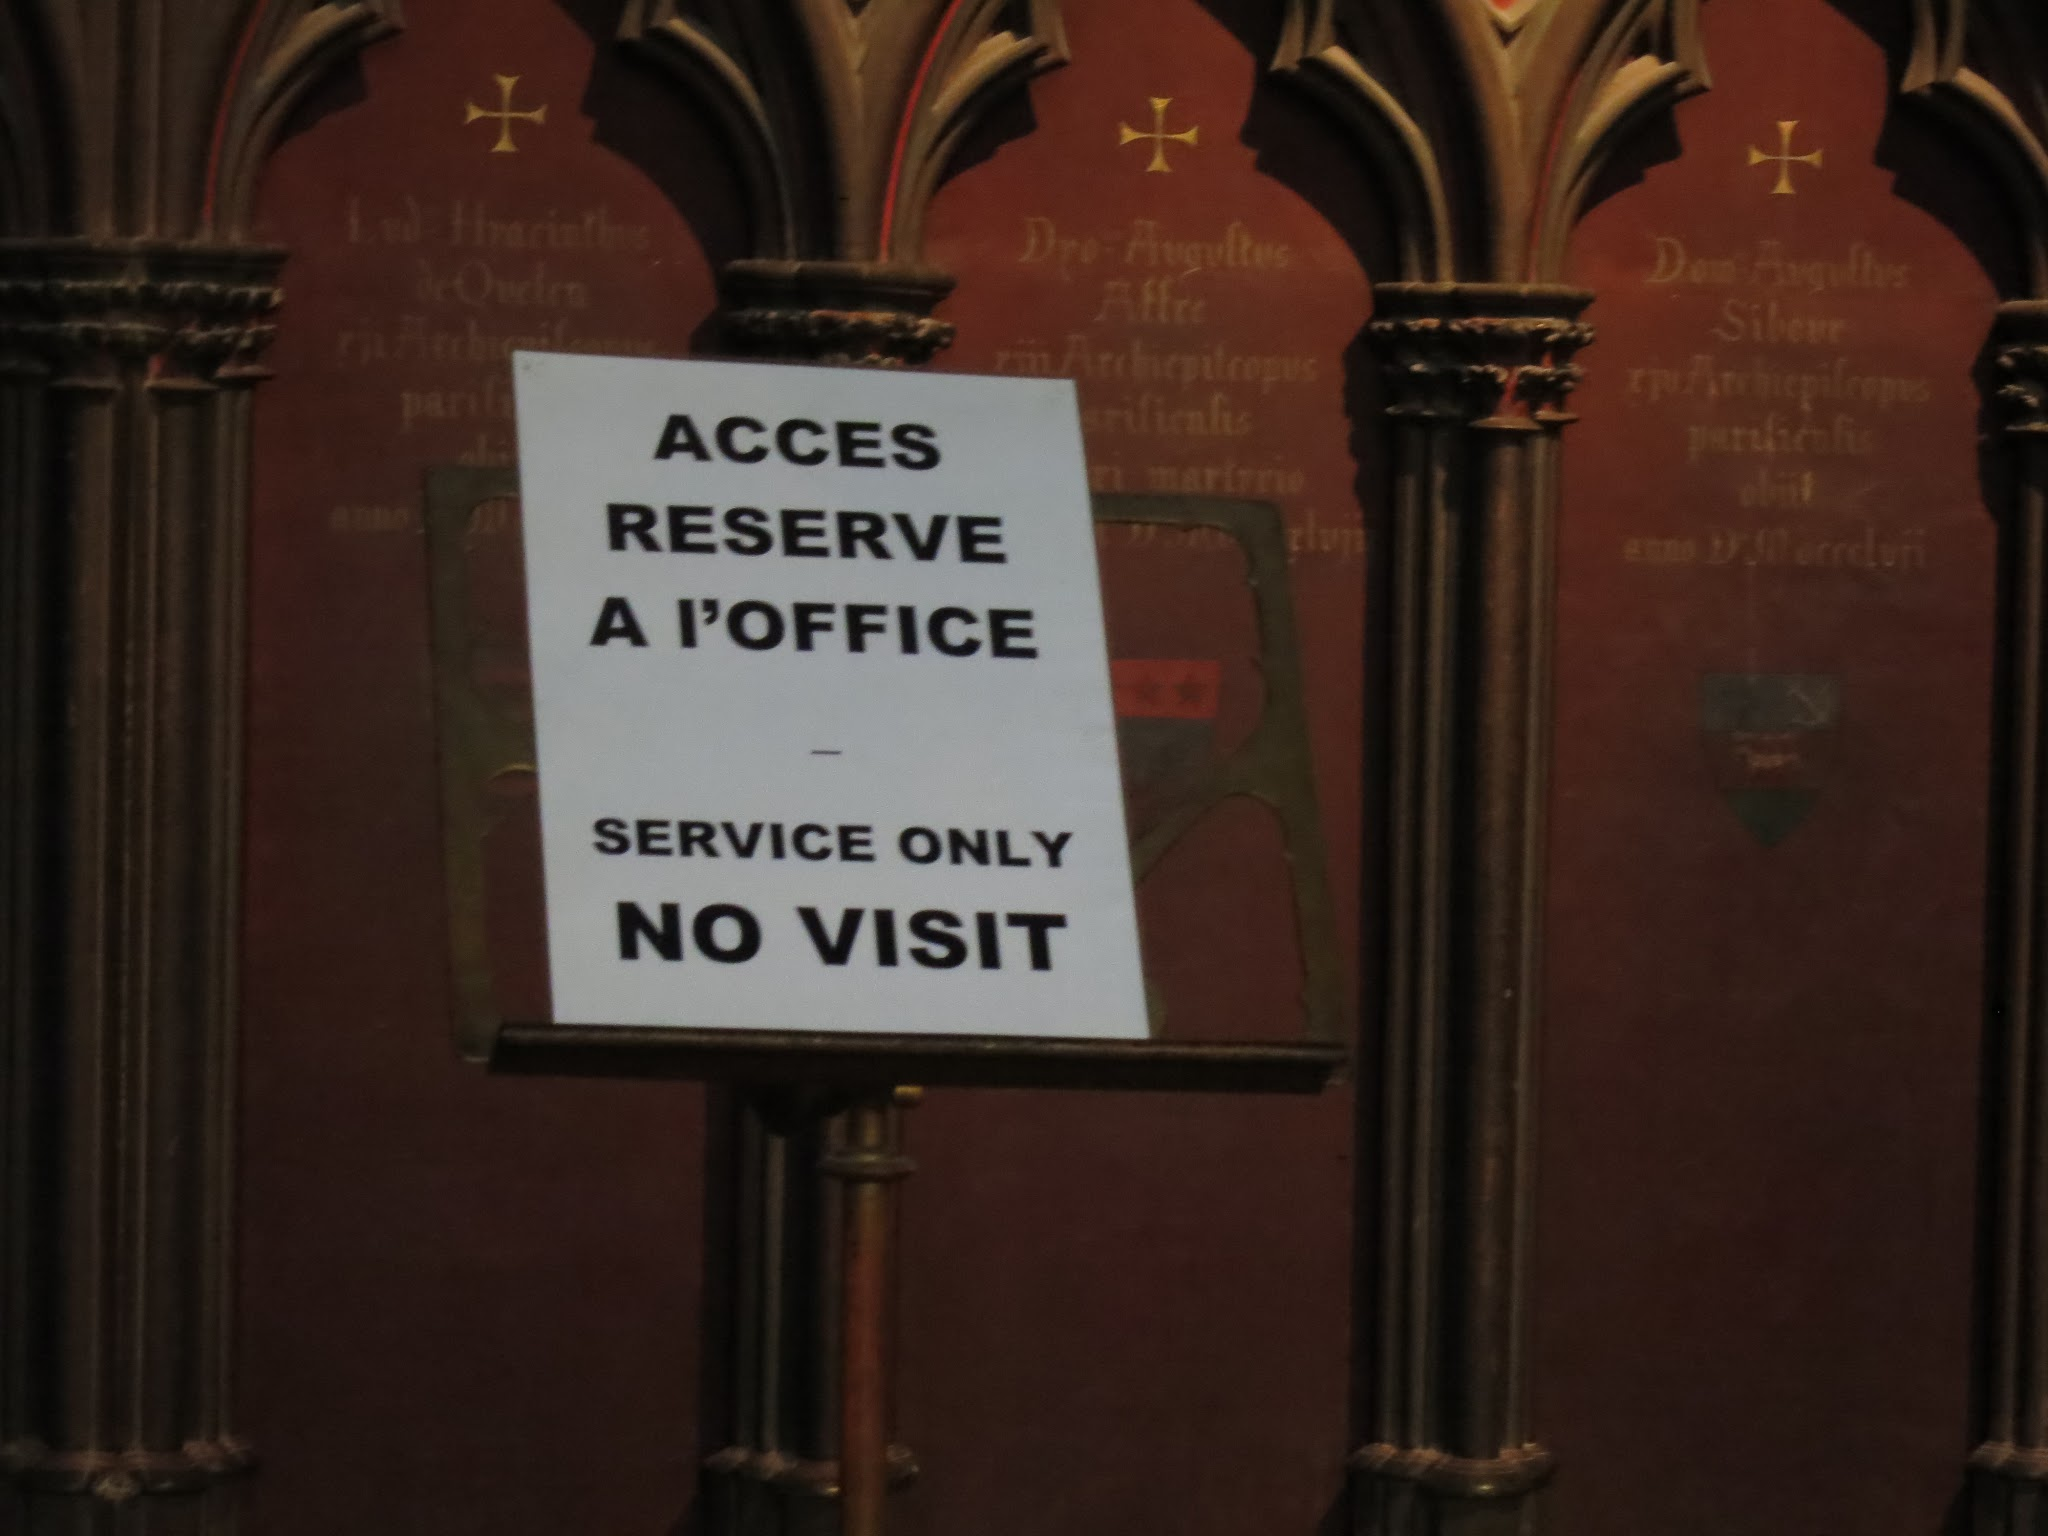 A sign found at Notre Dame in Paris. I guess they don't want visitors?